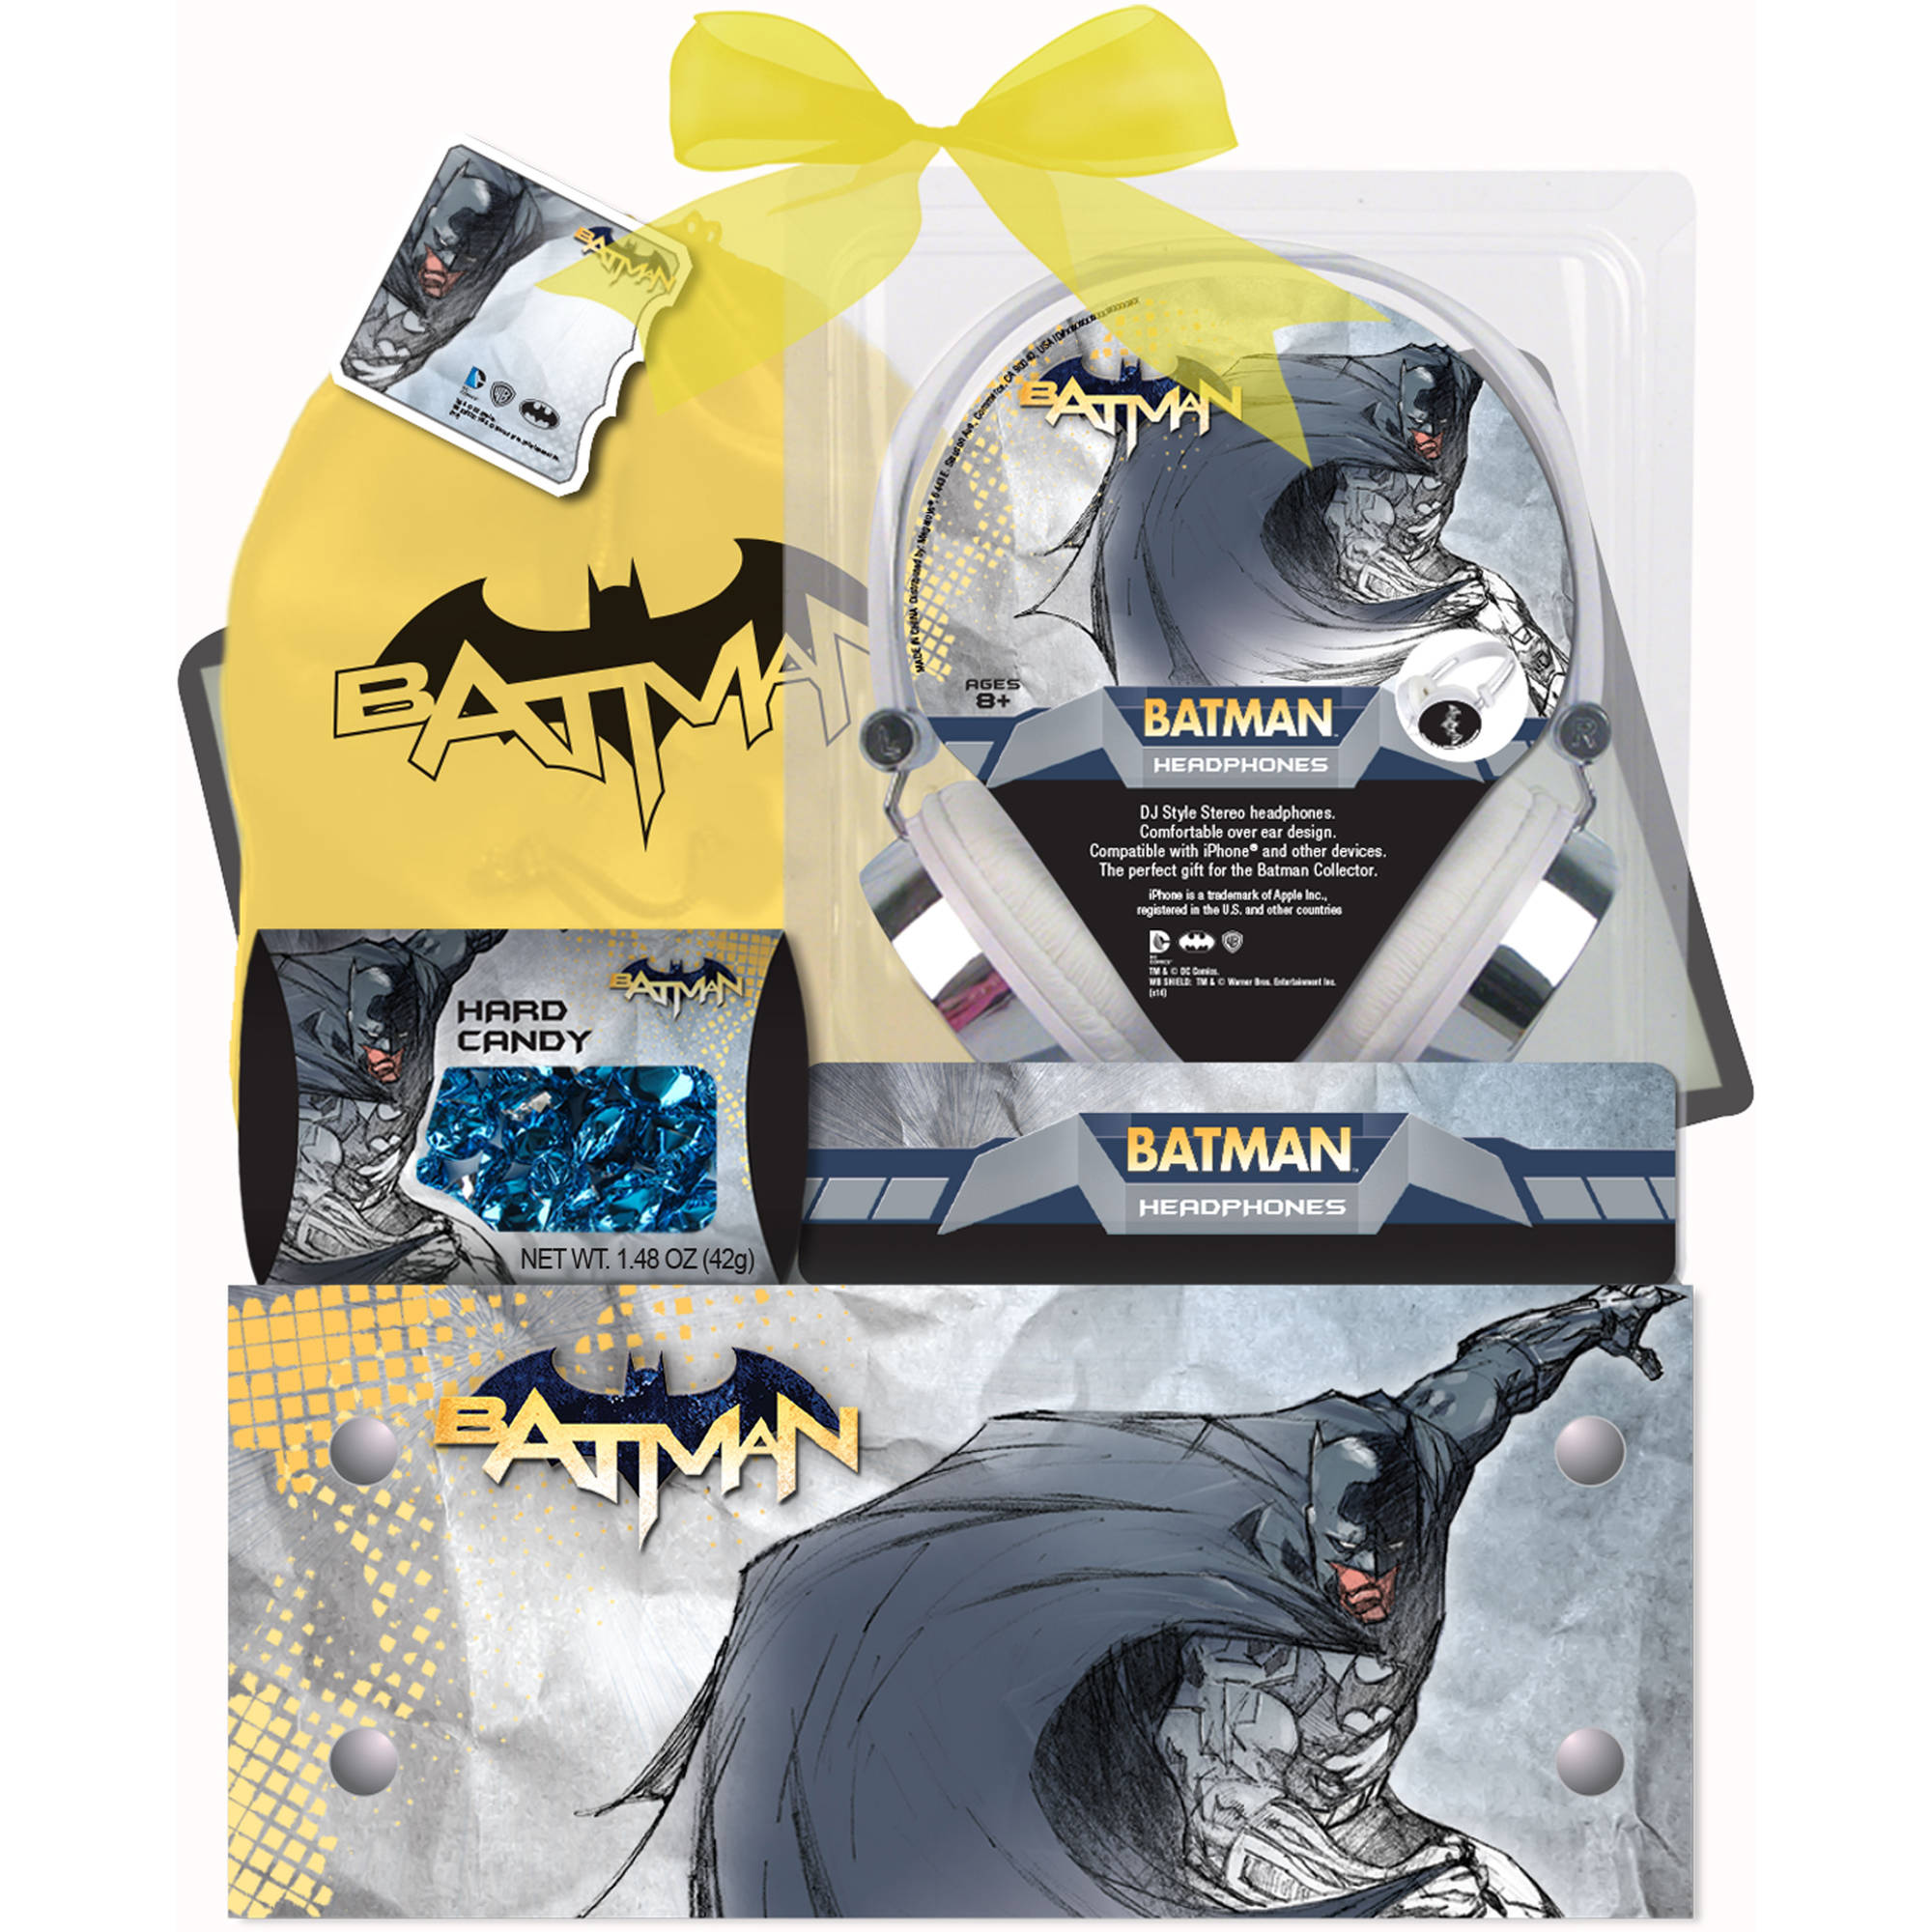 Batman Headphones Easter Gift Set